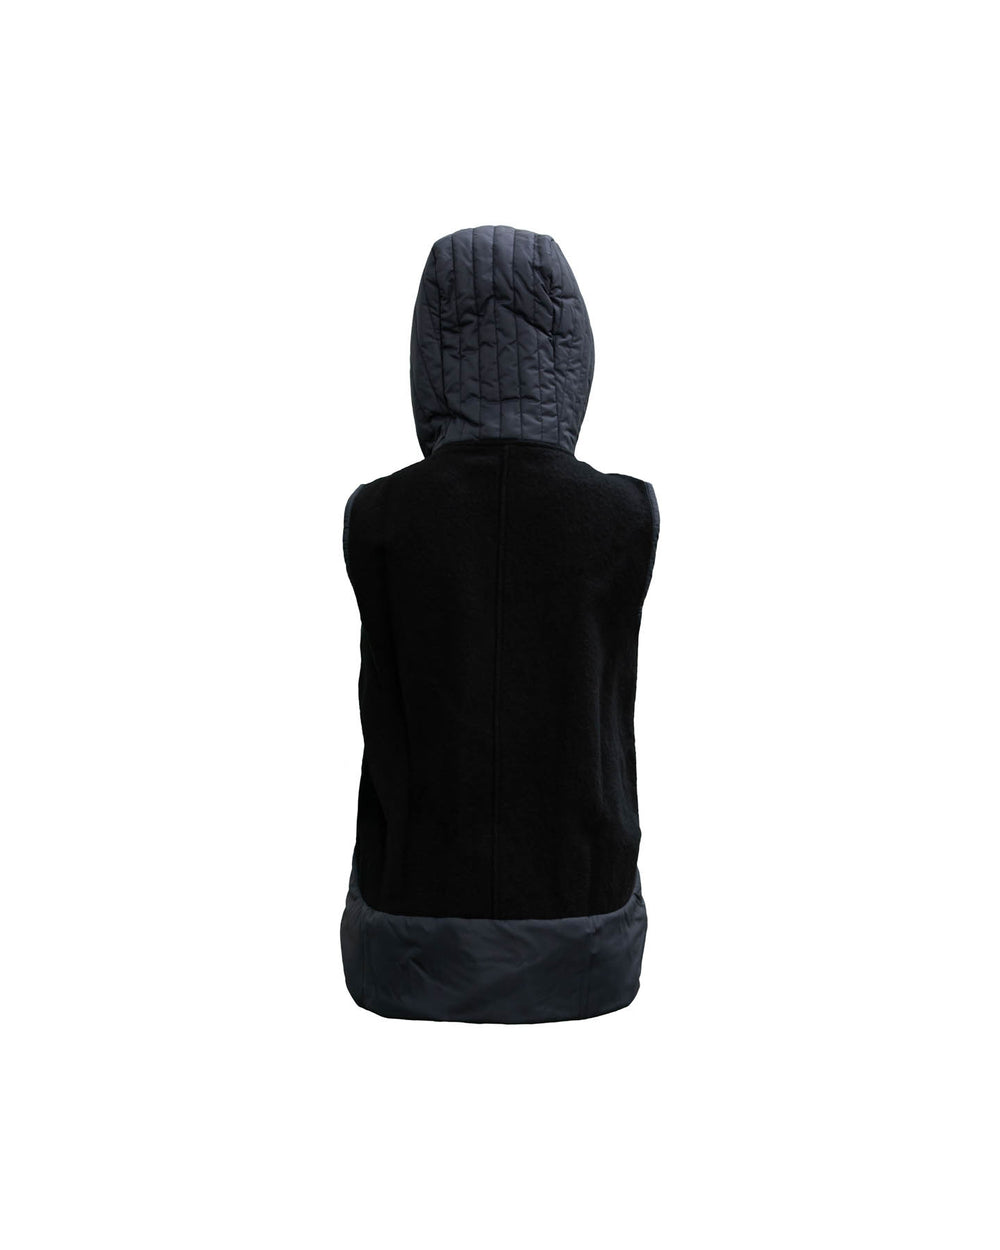 Hooded Vest With Hidden Zipper